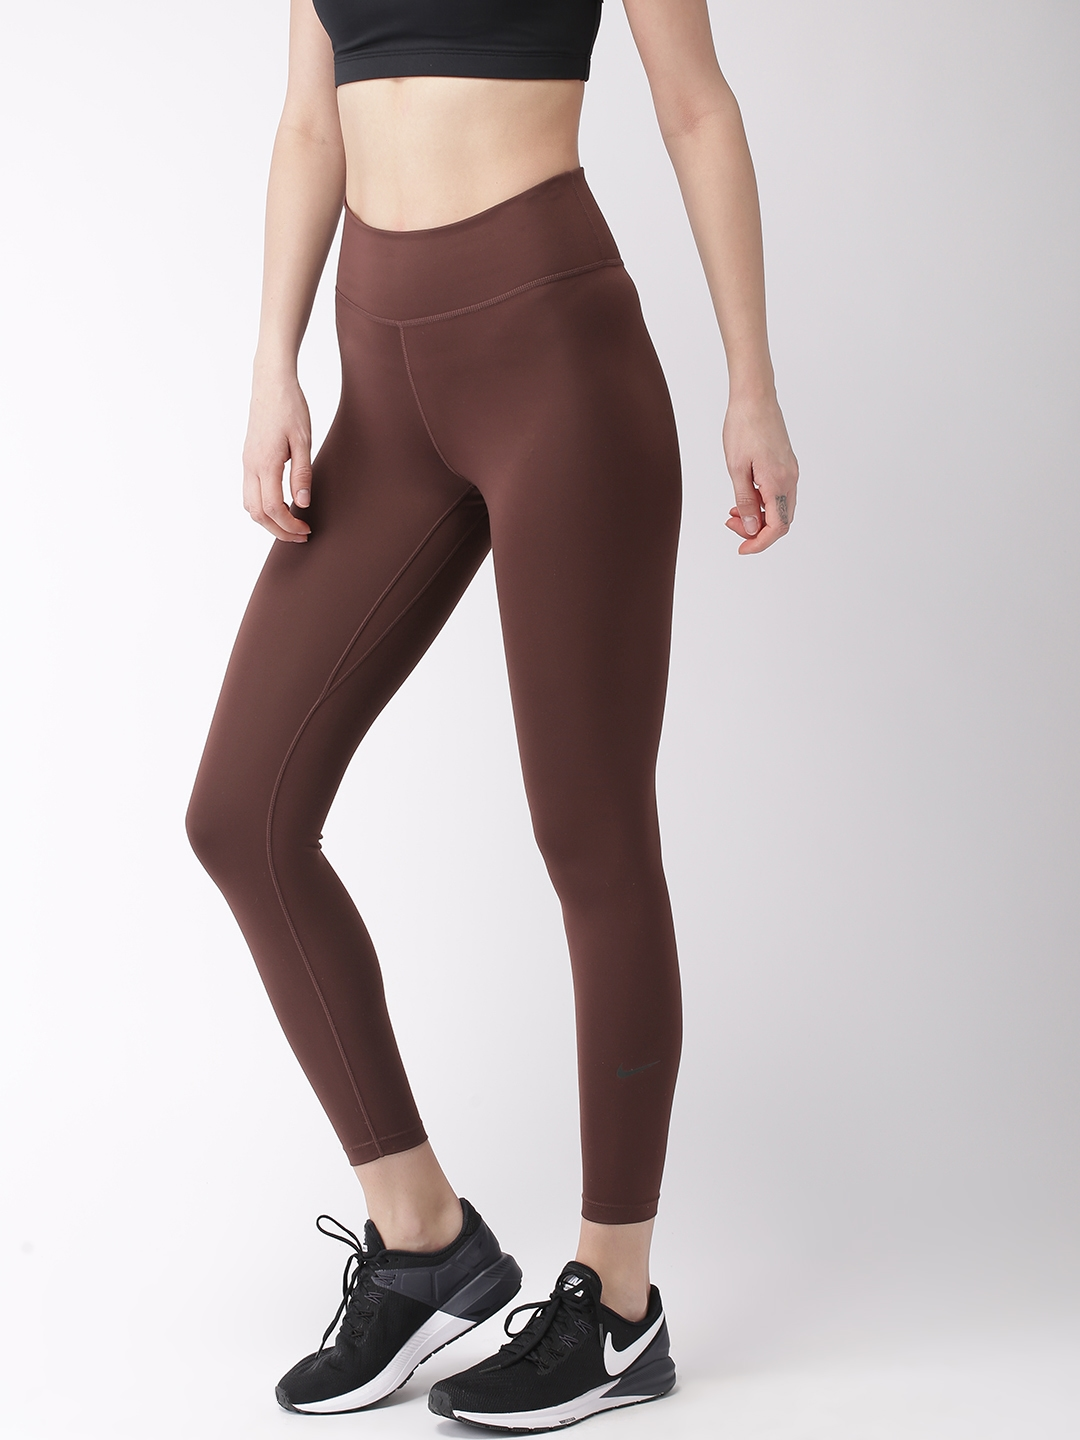 27529009fff4 Nike Women Brown Solid AS W NP The Nike Pro Tight Fit DRI-FIT Training  Tights